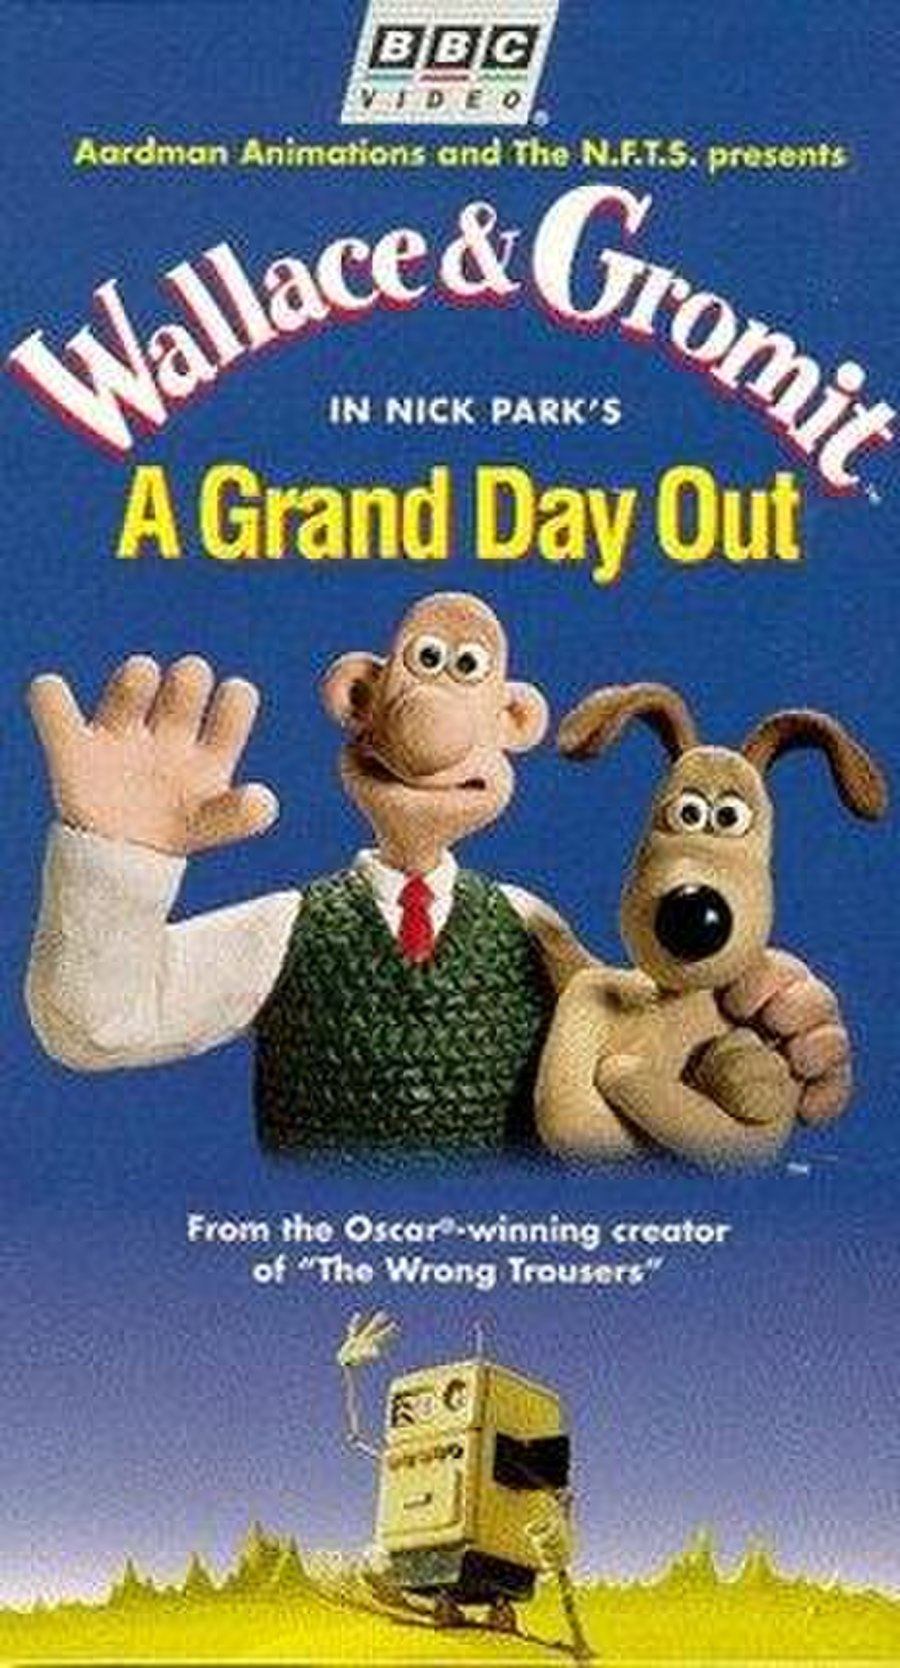 A Grand Day Out